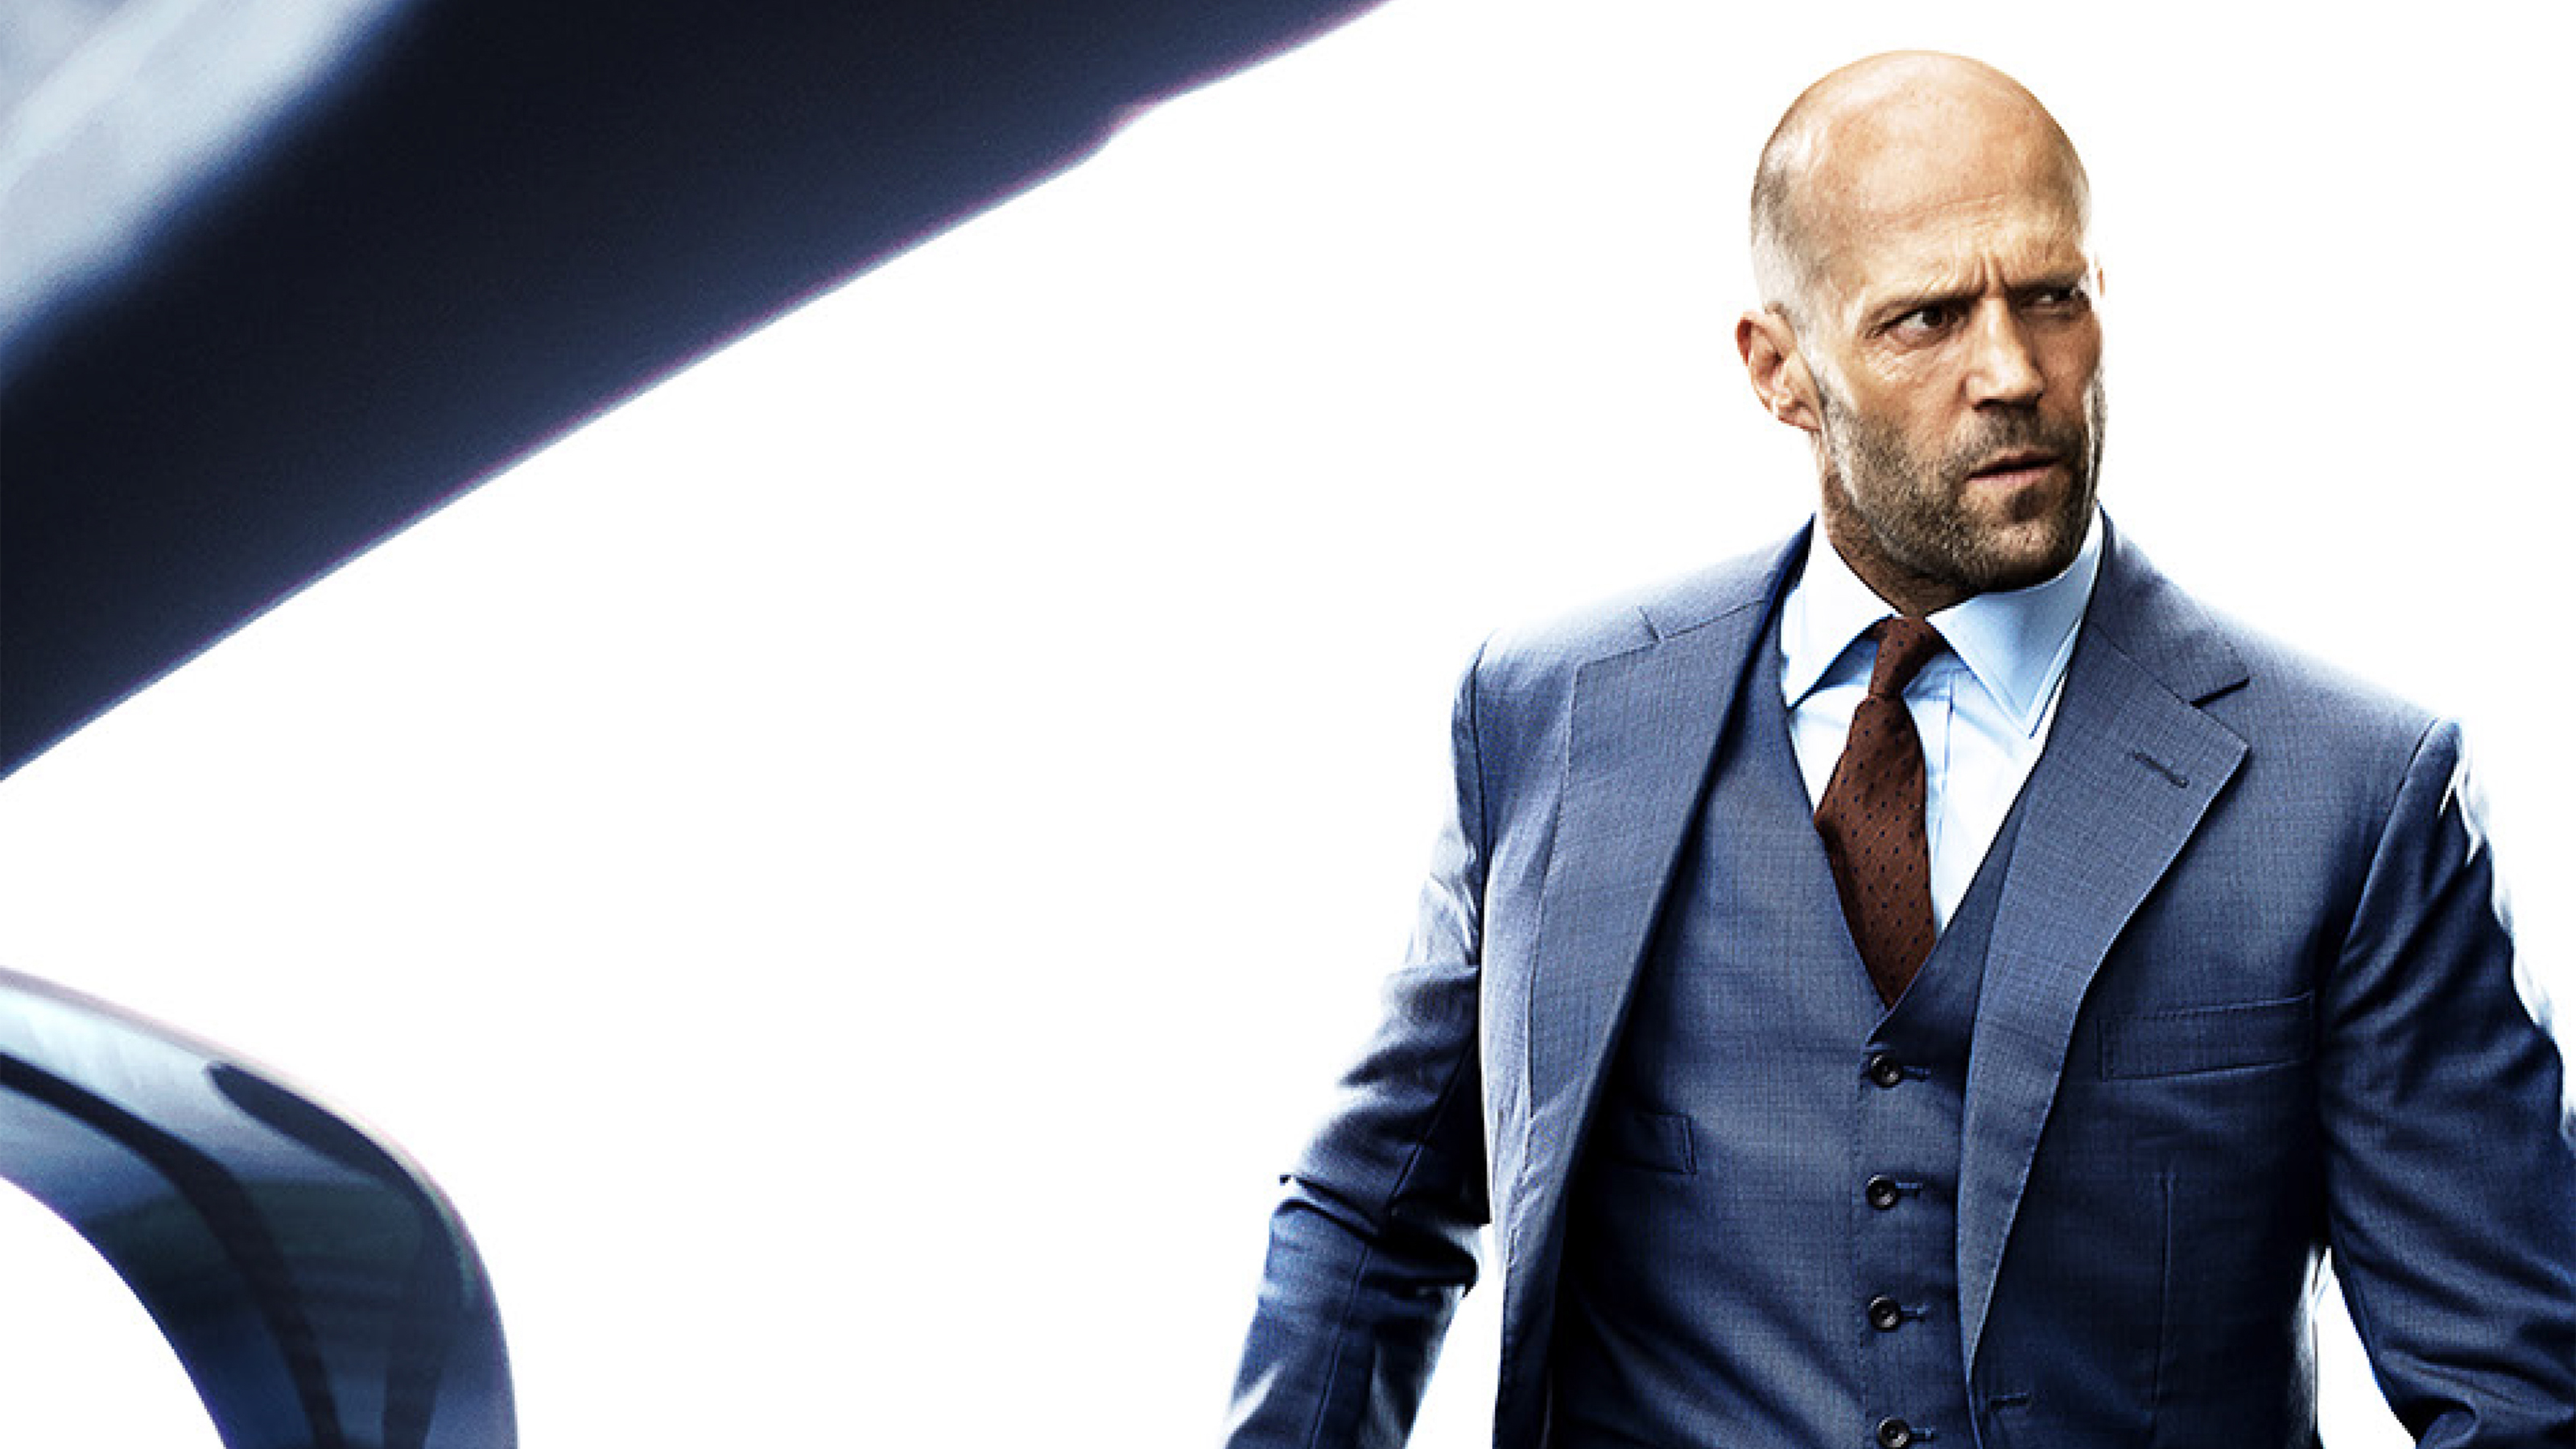 Jason Statham in Fast Furious Presents Hobbs Shaw Wallpapers 3200x1800